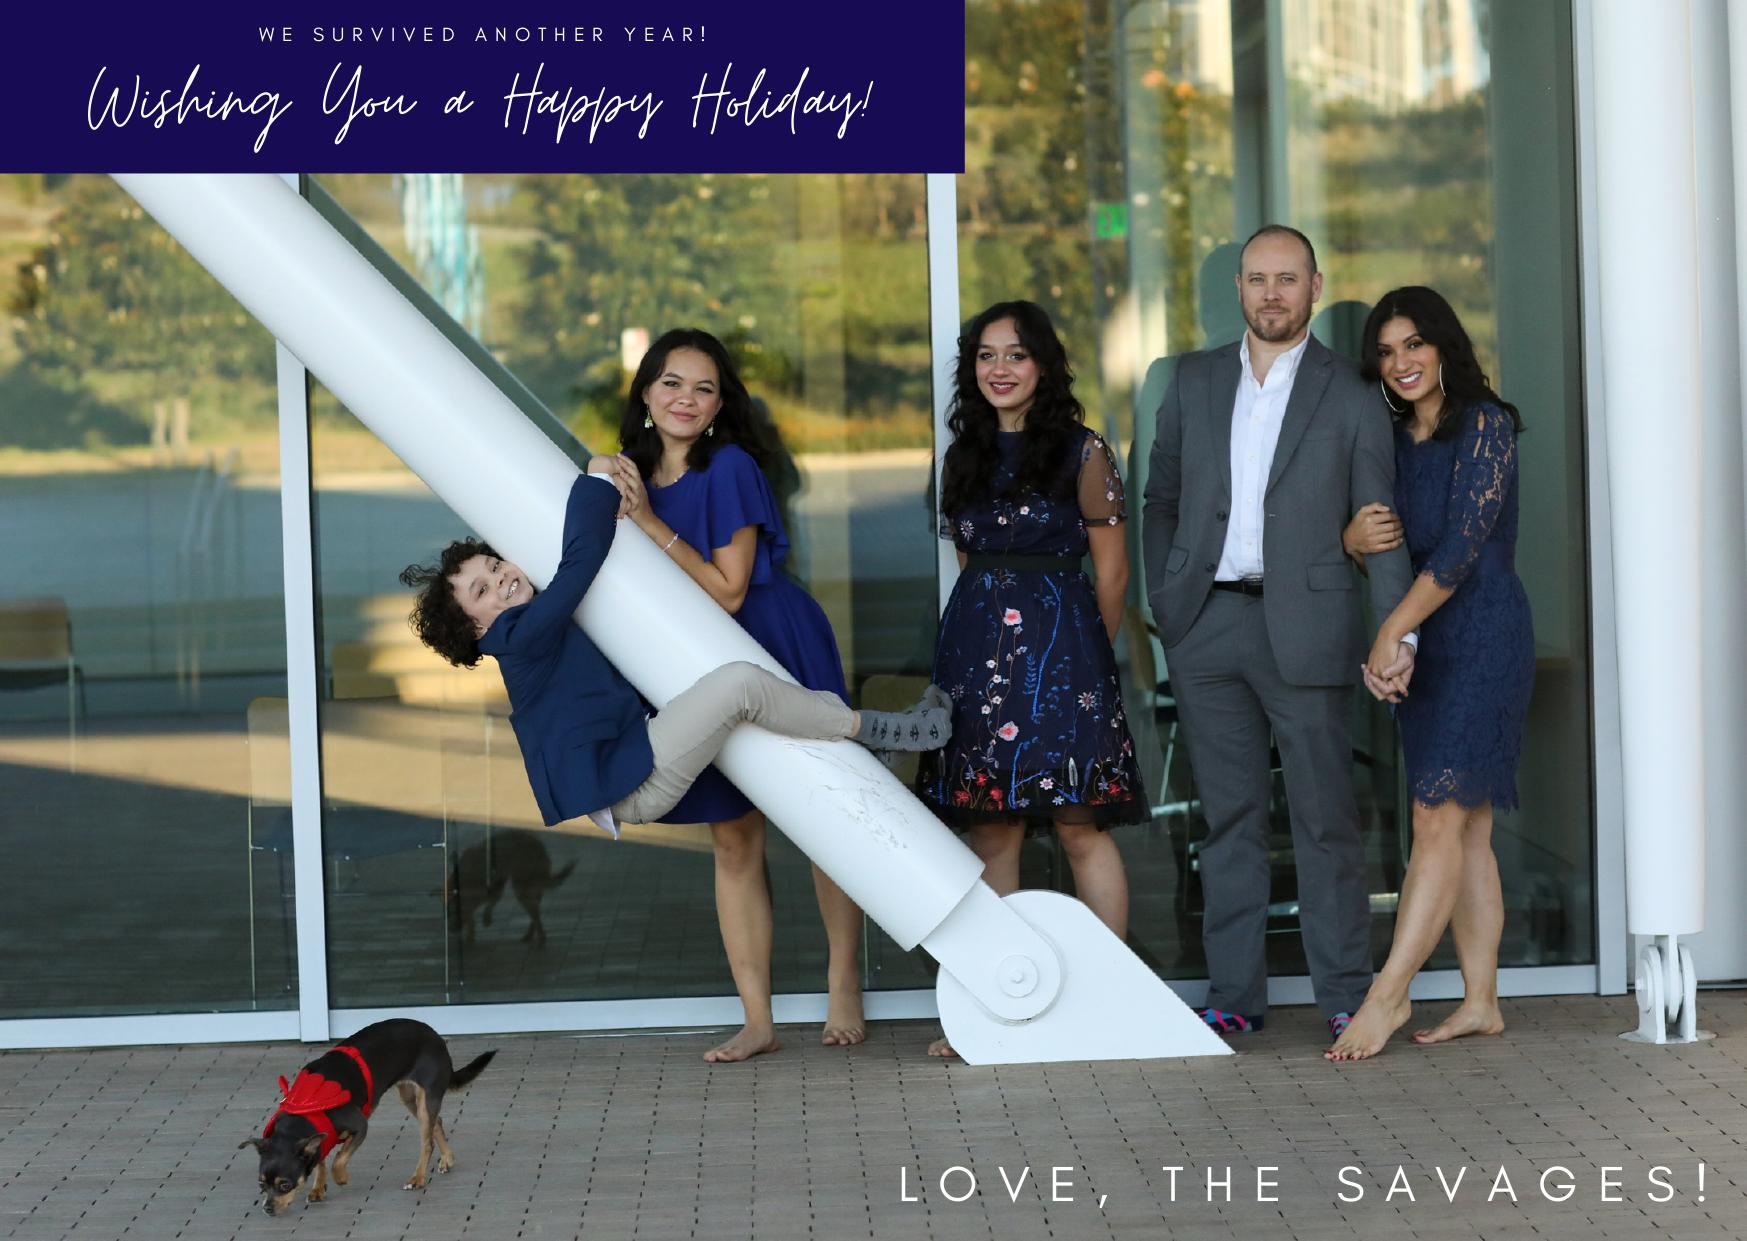 Savage Family Holiday Card Front